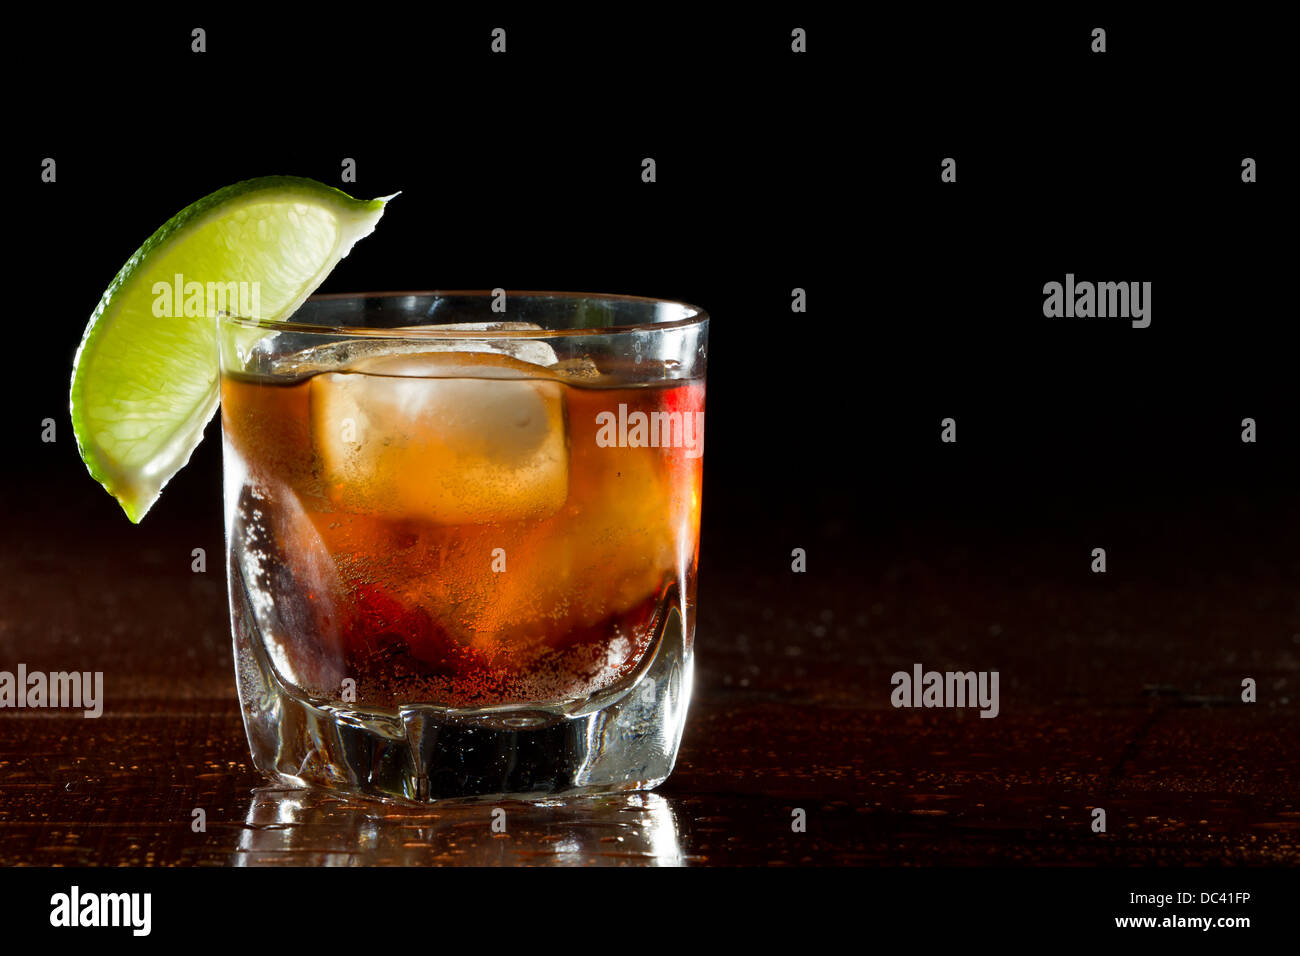 cuba libre, rum and cola cocktail served in a short glass with a lime garnish - Stock Image